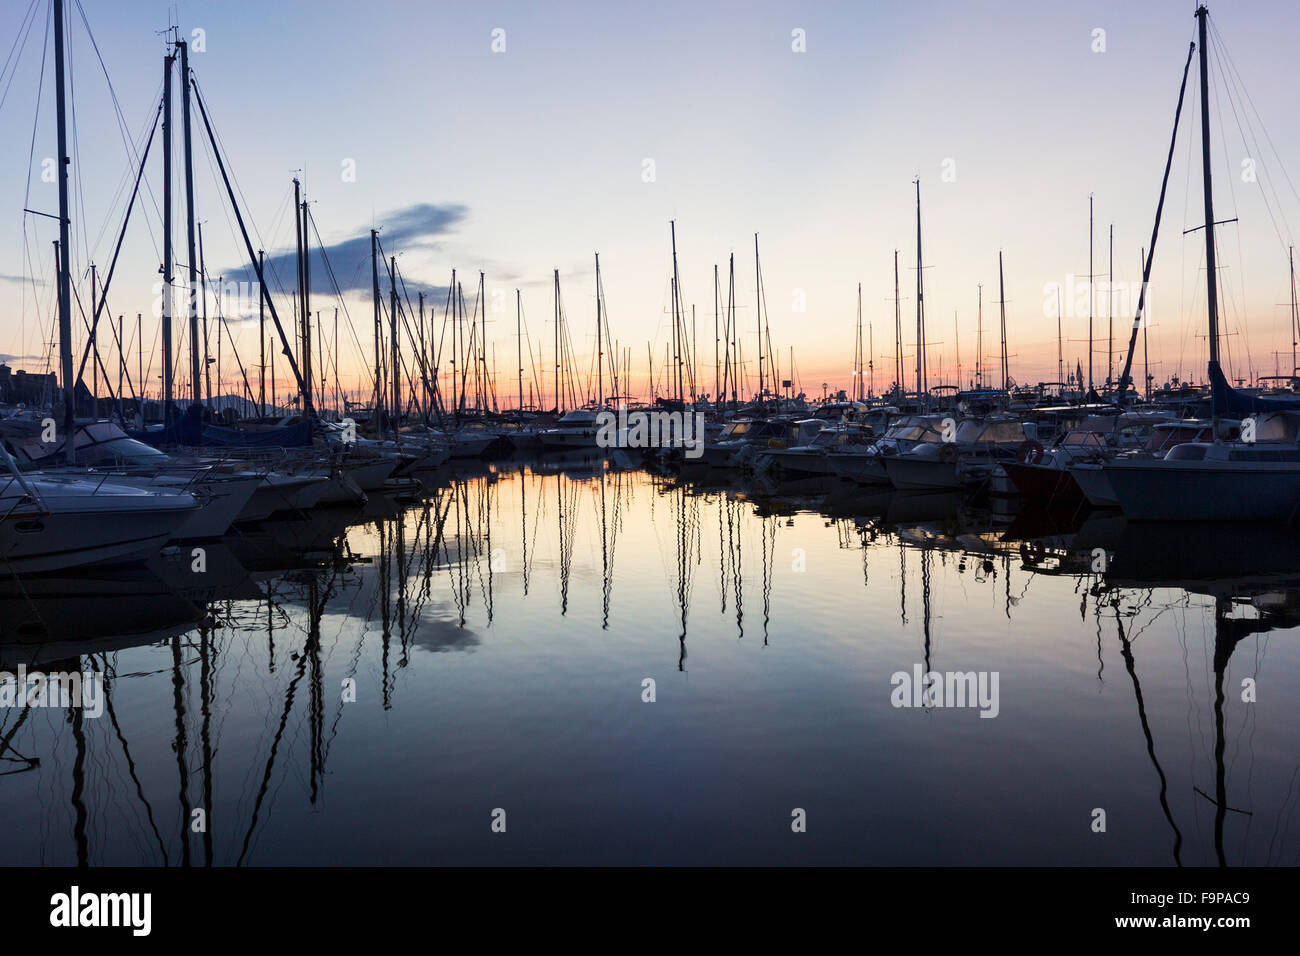 Boats anchored in the harbor in Antibes in France - Stock Image